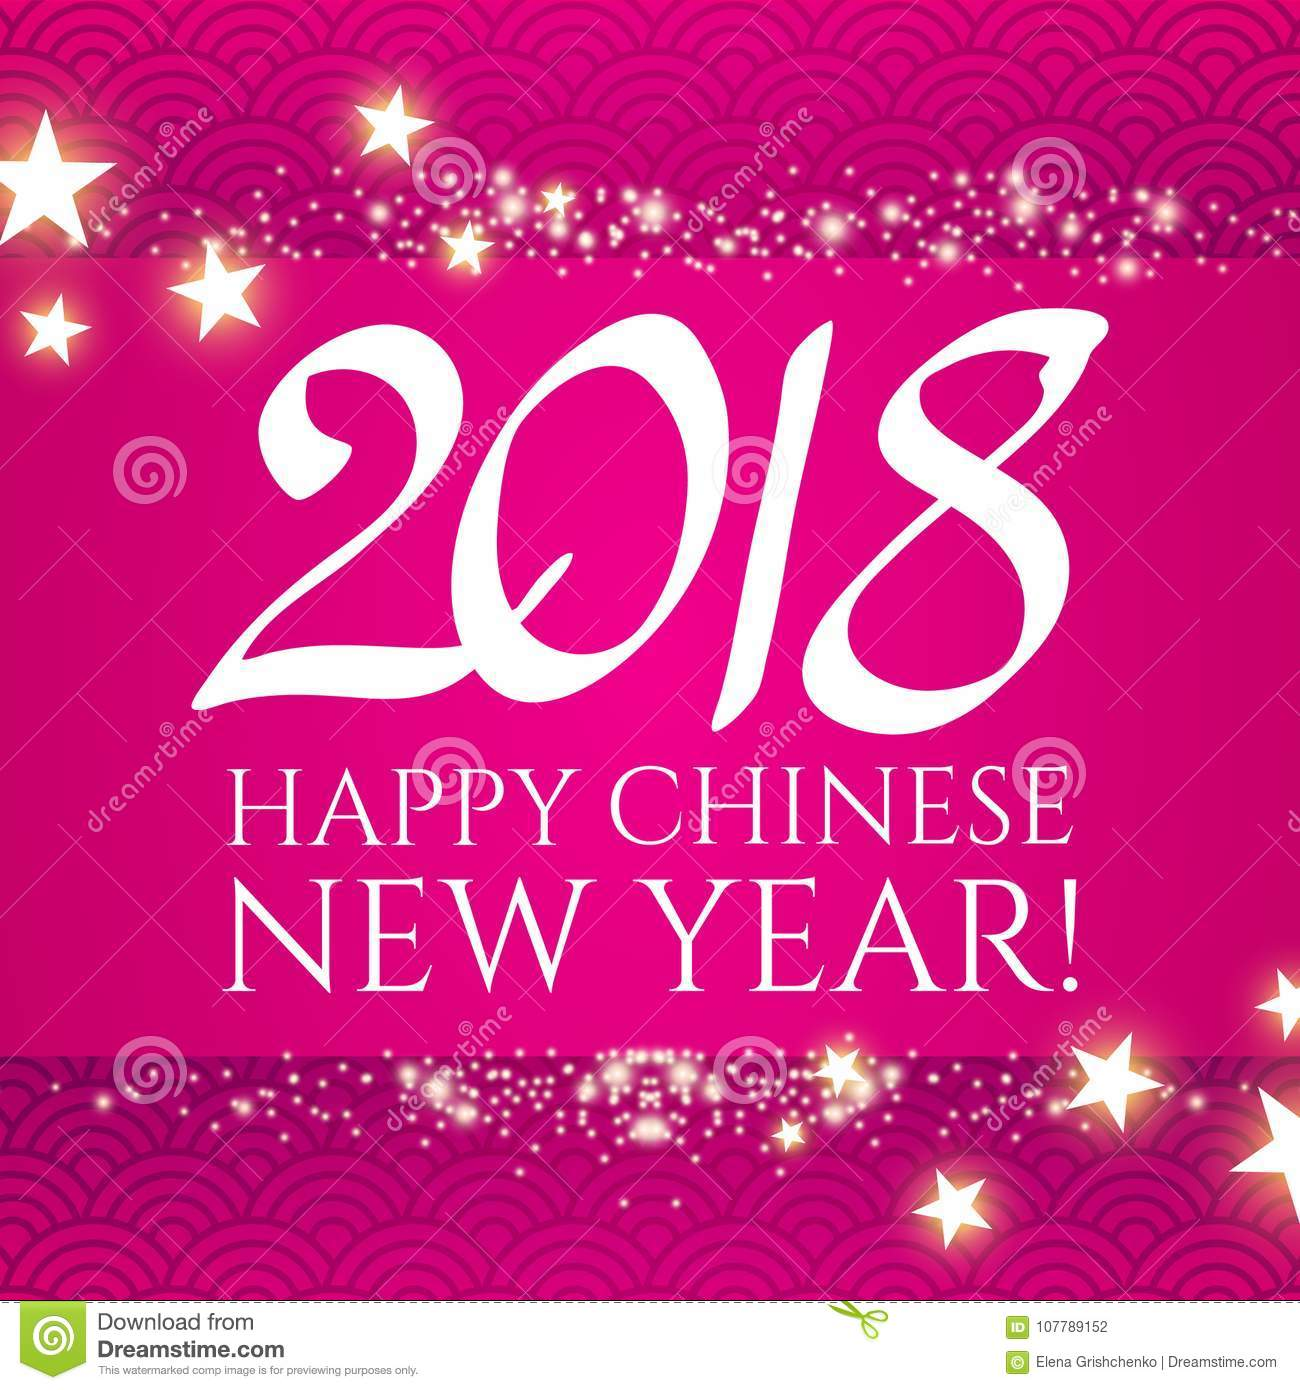 download happy chinese new year card template with lettering 2018 and lights vector illustration stock